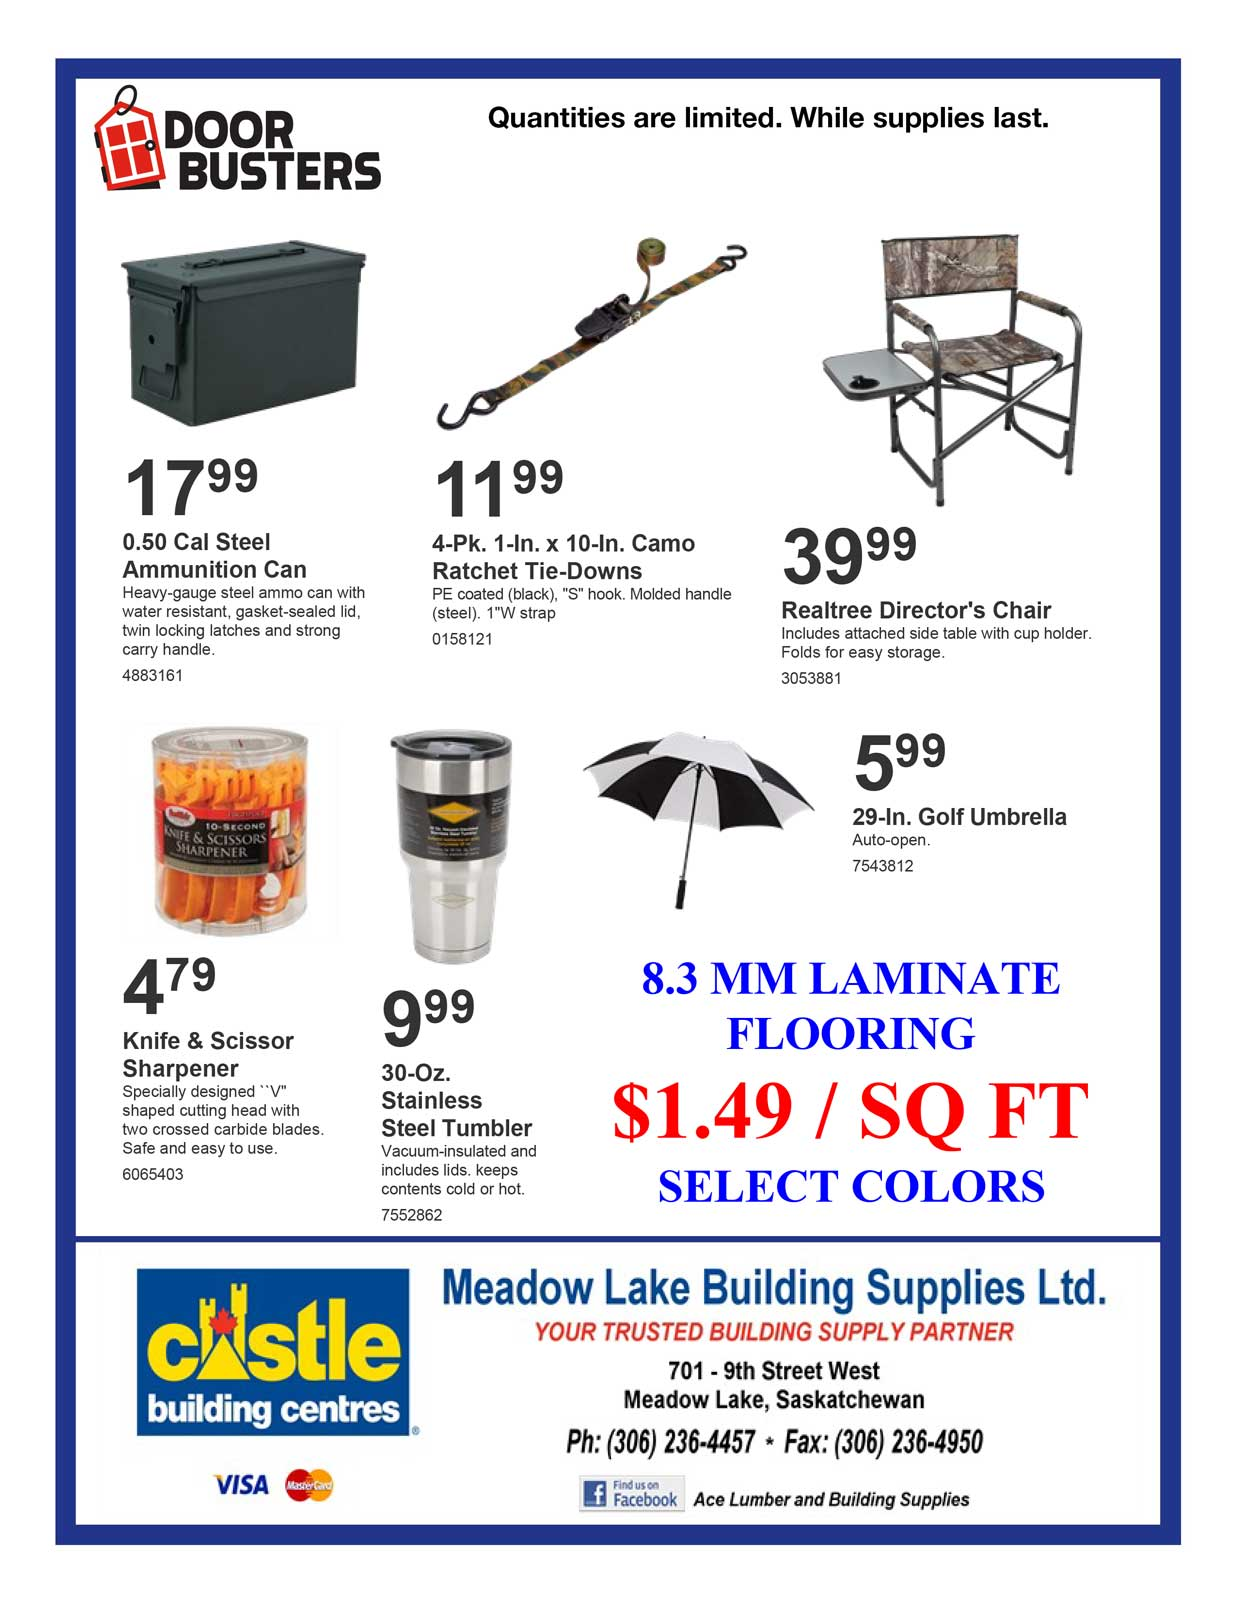 Sale Flyer Ace Lumber And Building Supplies Meadow Lake Sk